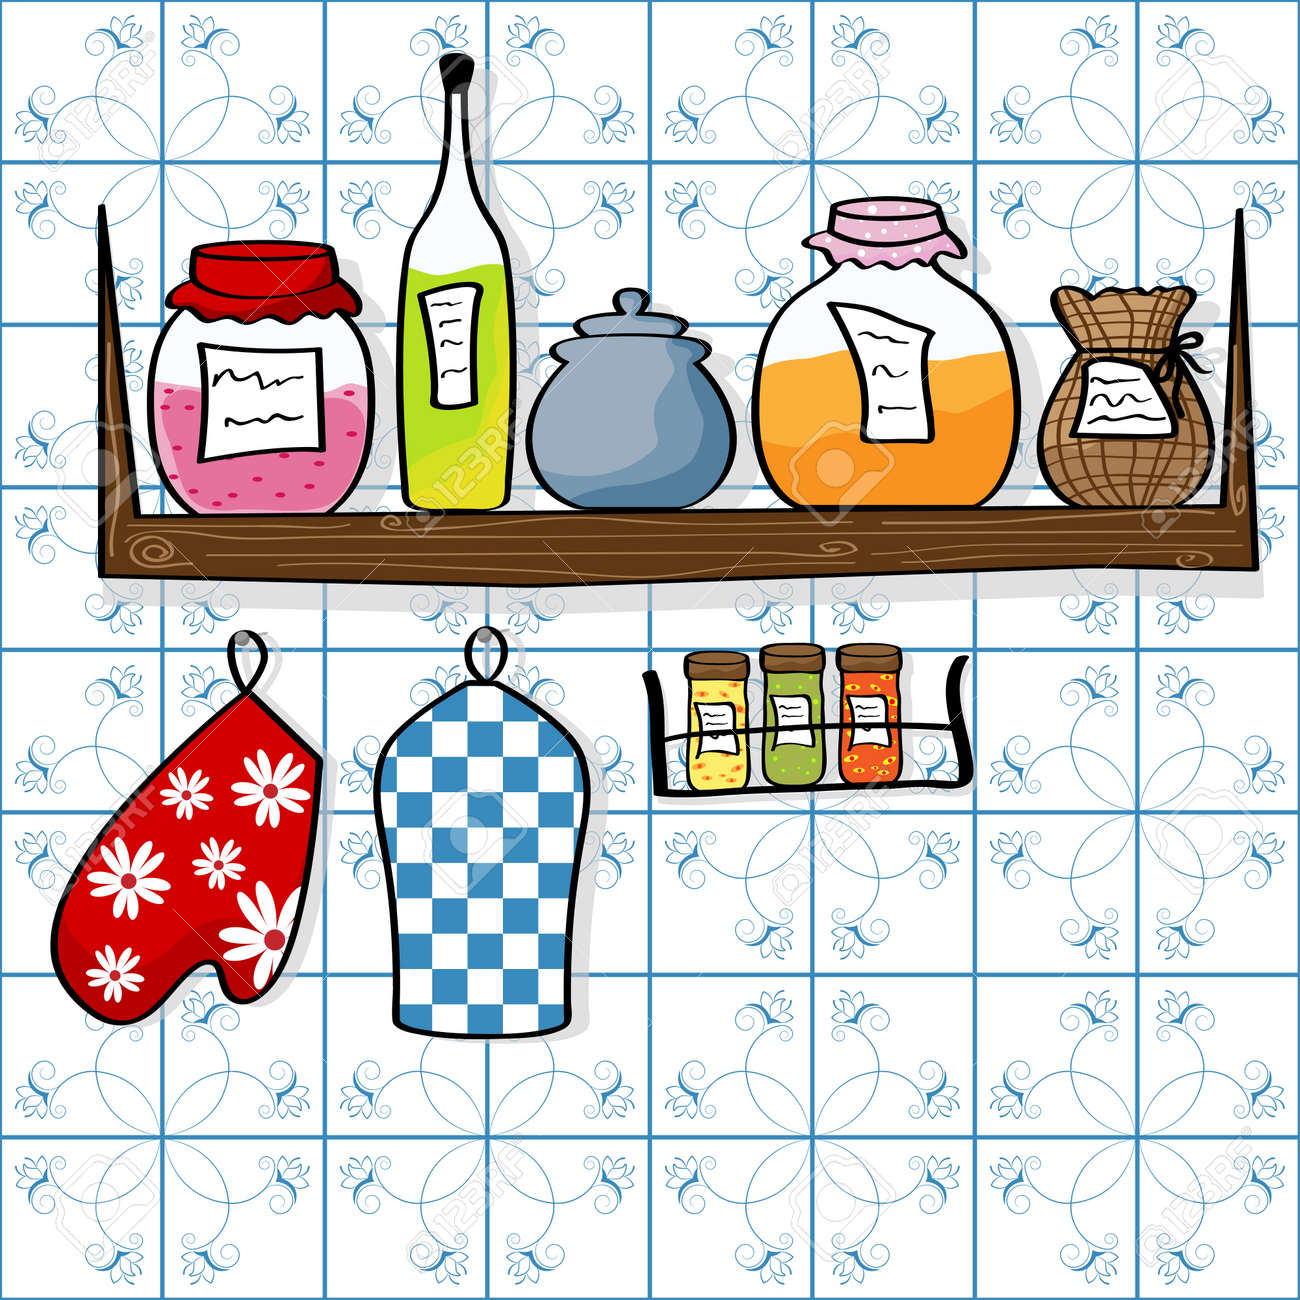 picture of kitchen shelf with bottles and jam jars Stock Vector - 8265679